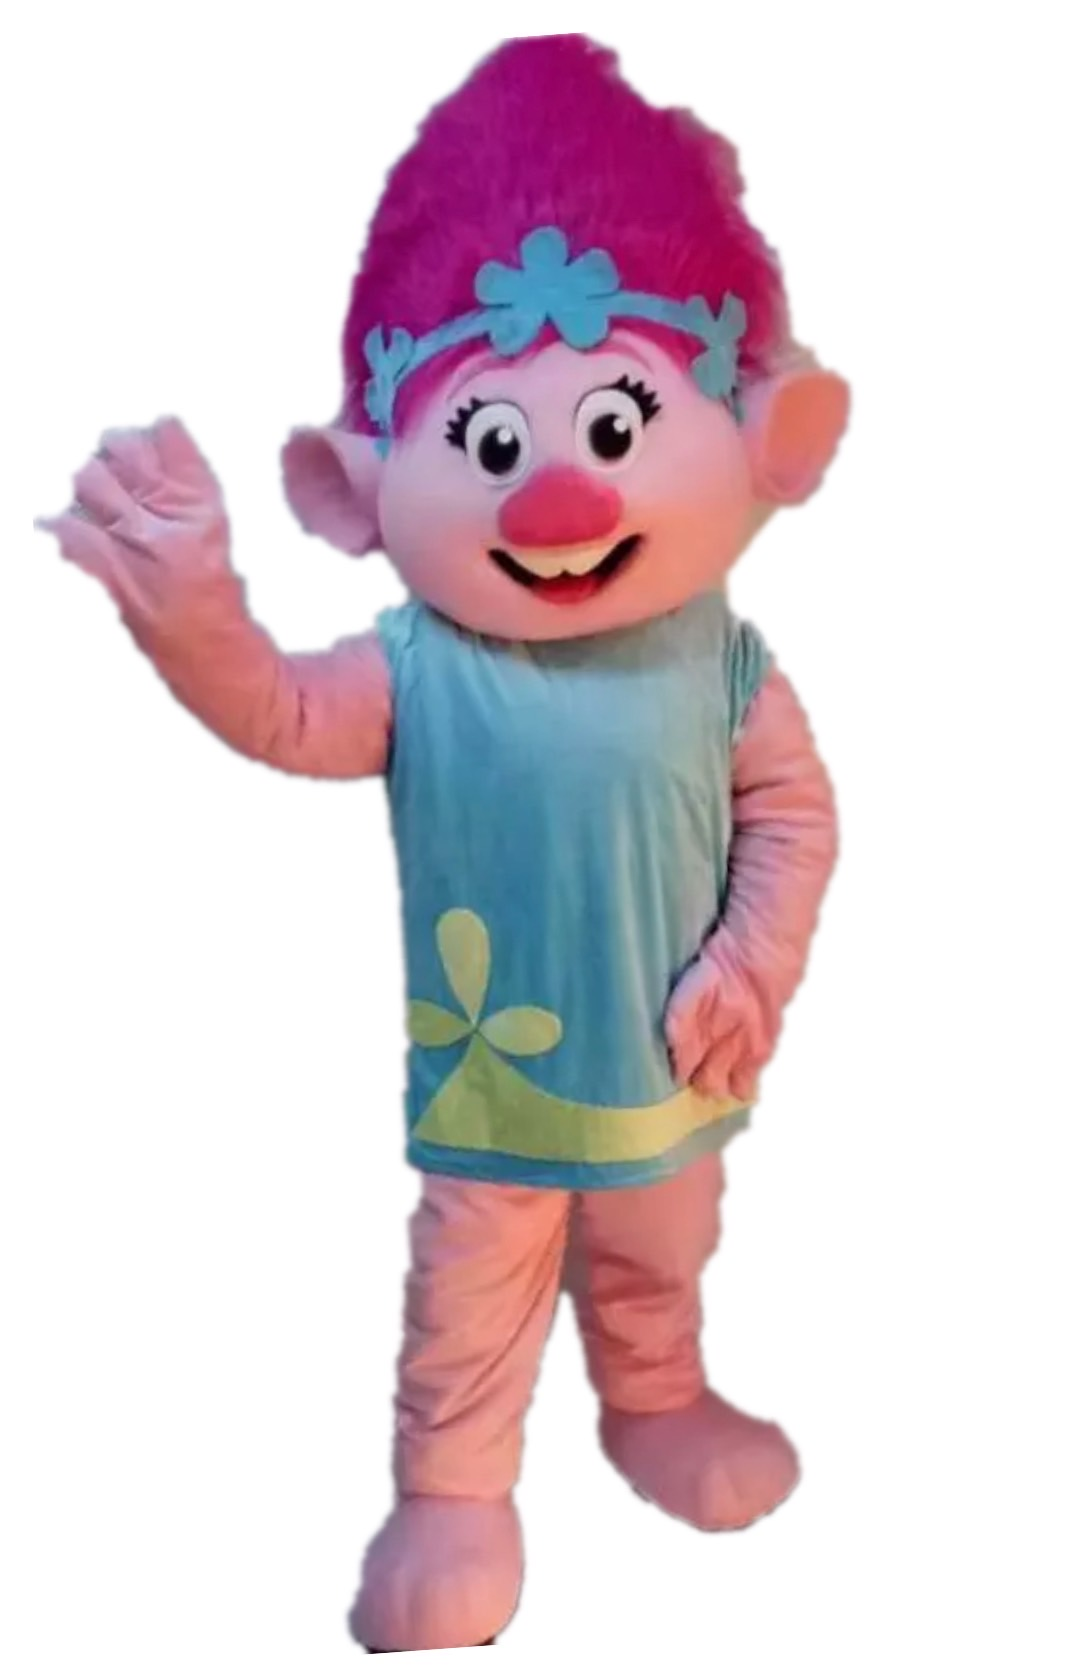 Pink Magic Doll Mascot